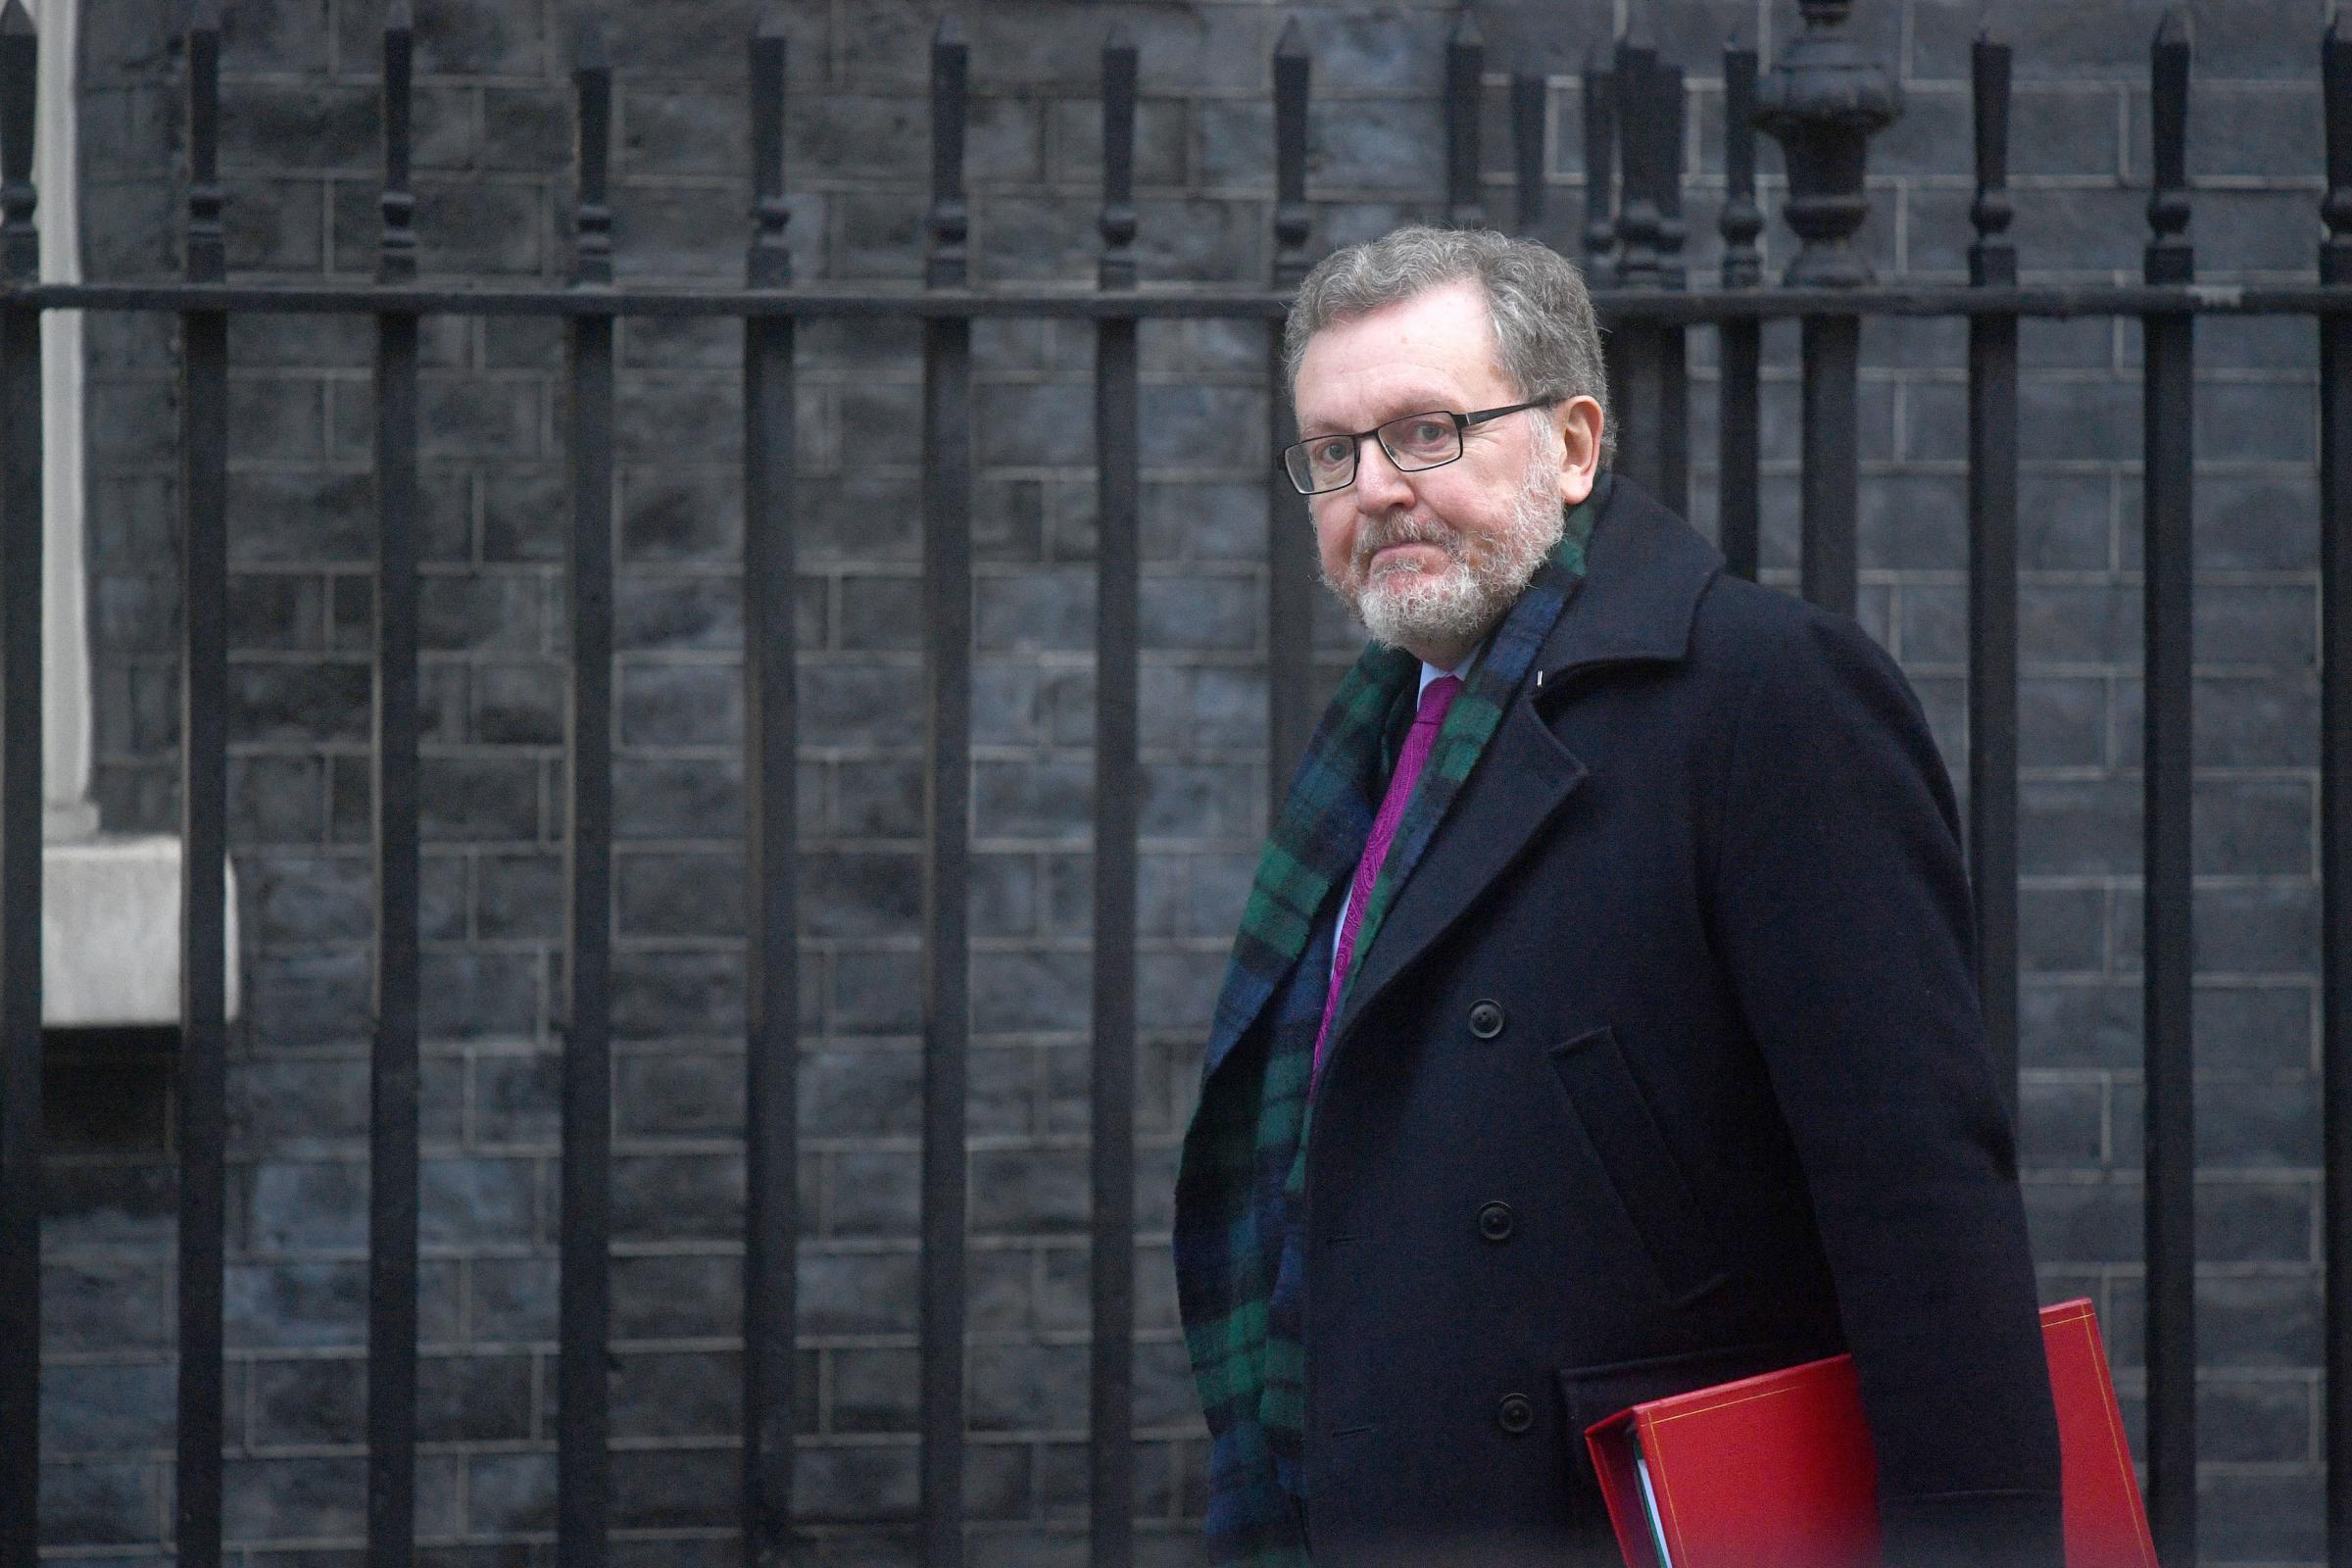 Scotland Secretary David Mundell faces fresh calls to resign over Brexit vote